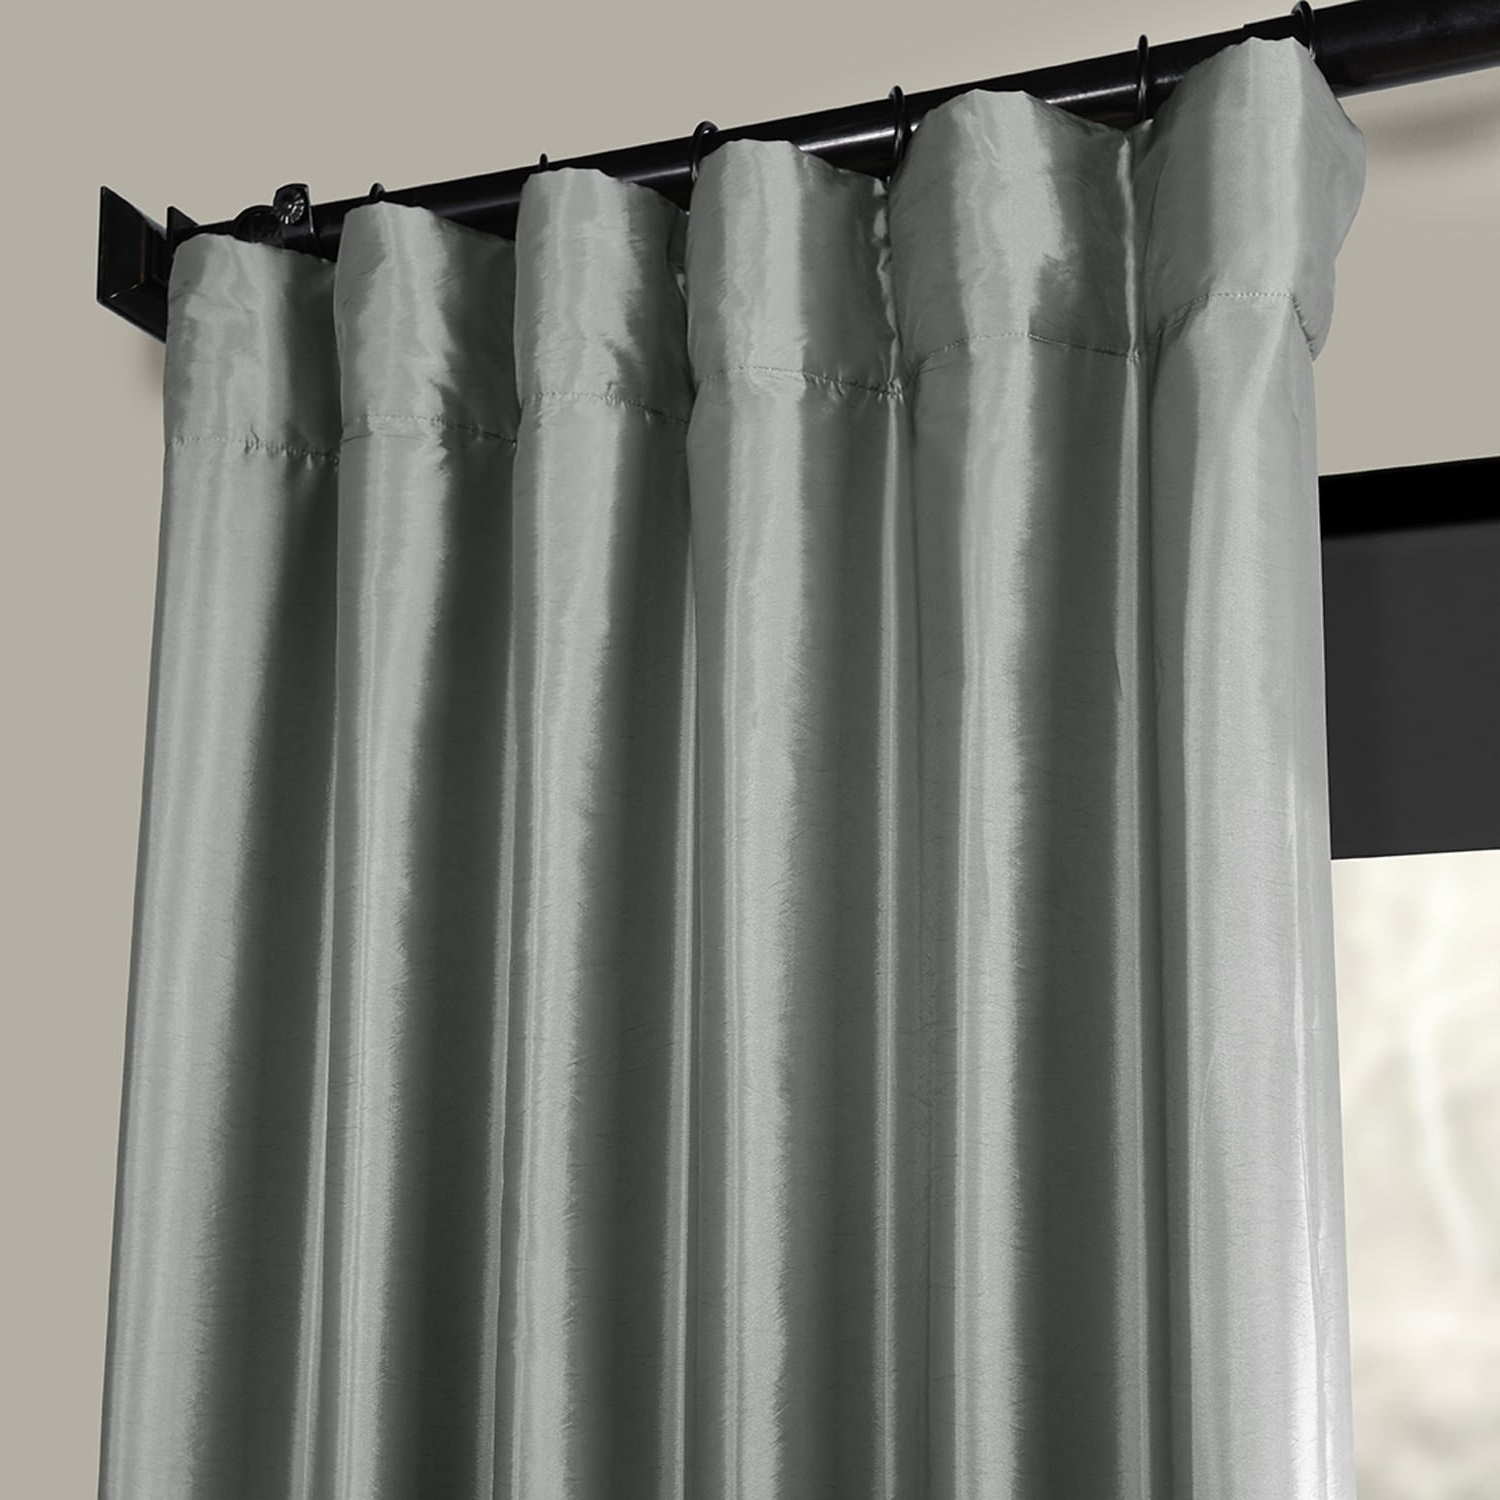 Most Popular Exclusive Fabrics Solid Faux Silk Taffeta Platinum Single Curtain Panel Intended For Solid Faux Silk Taffeta Graphite Single Curtain Panels (View 20 of 20)